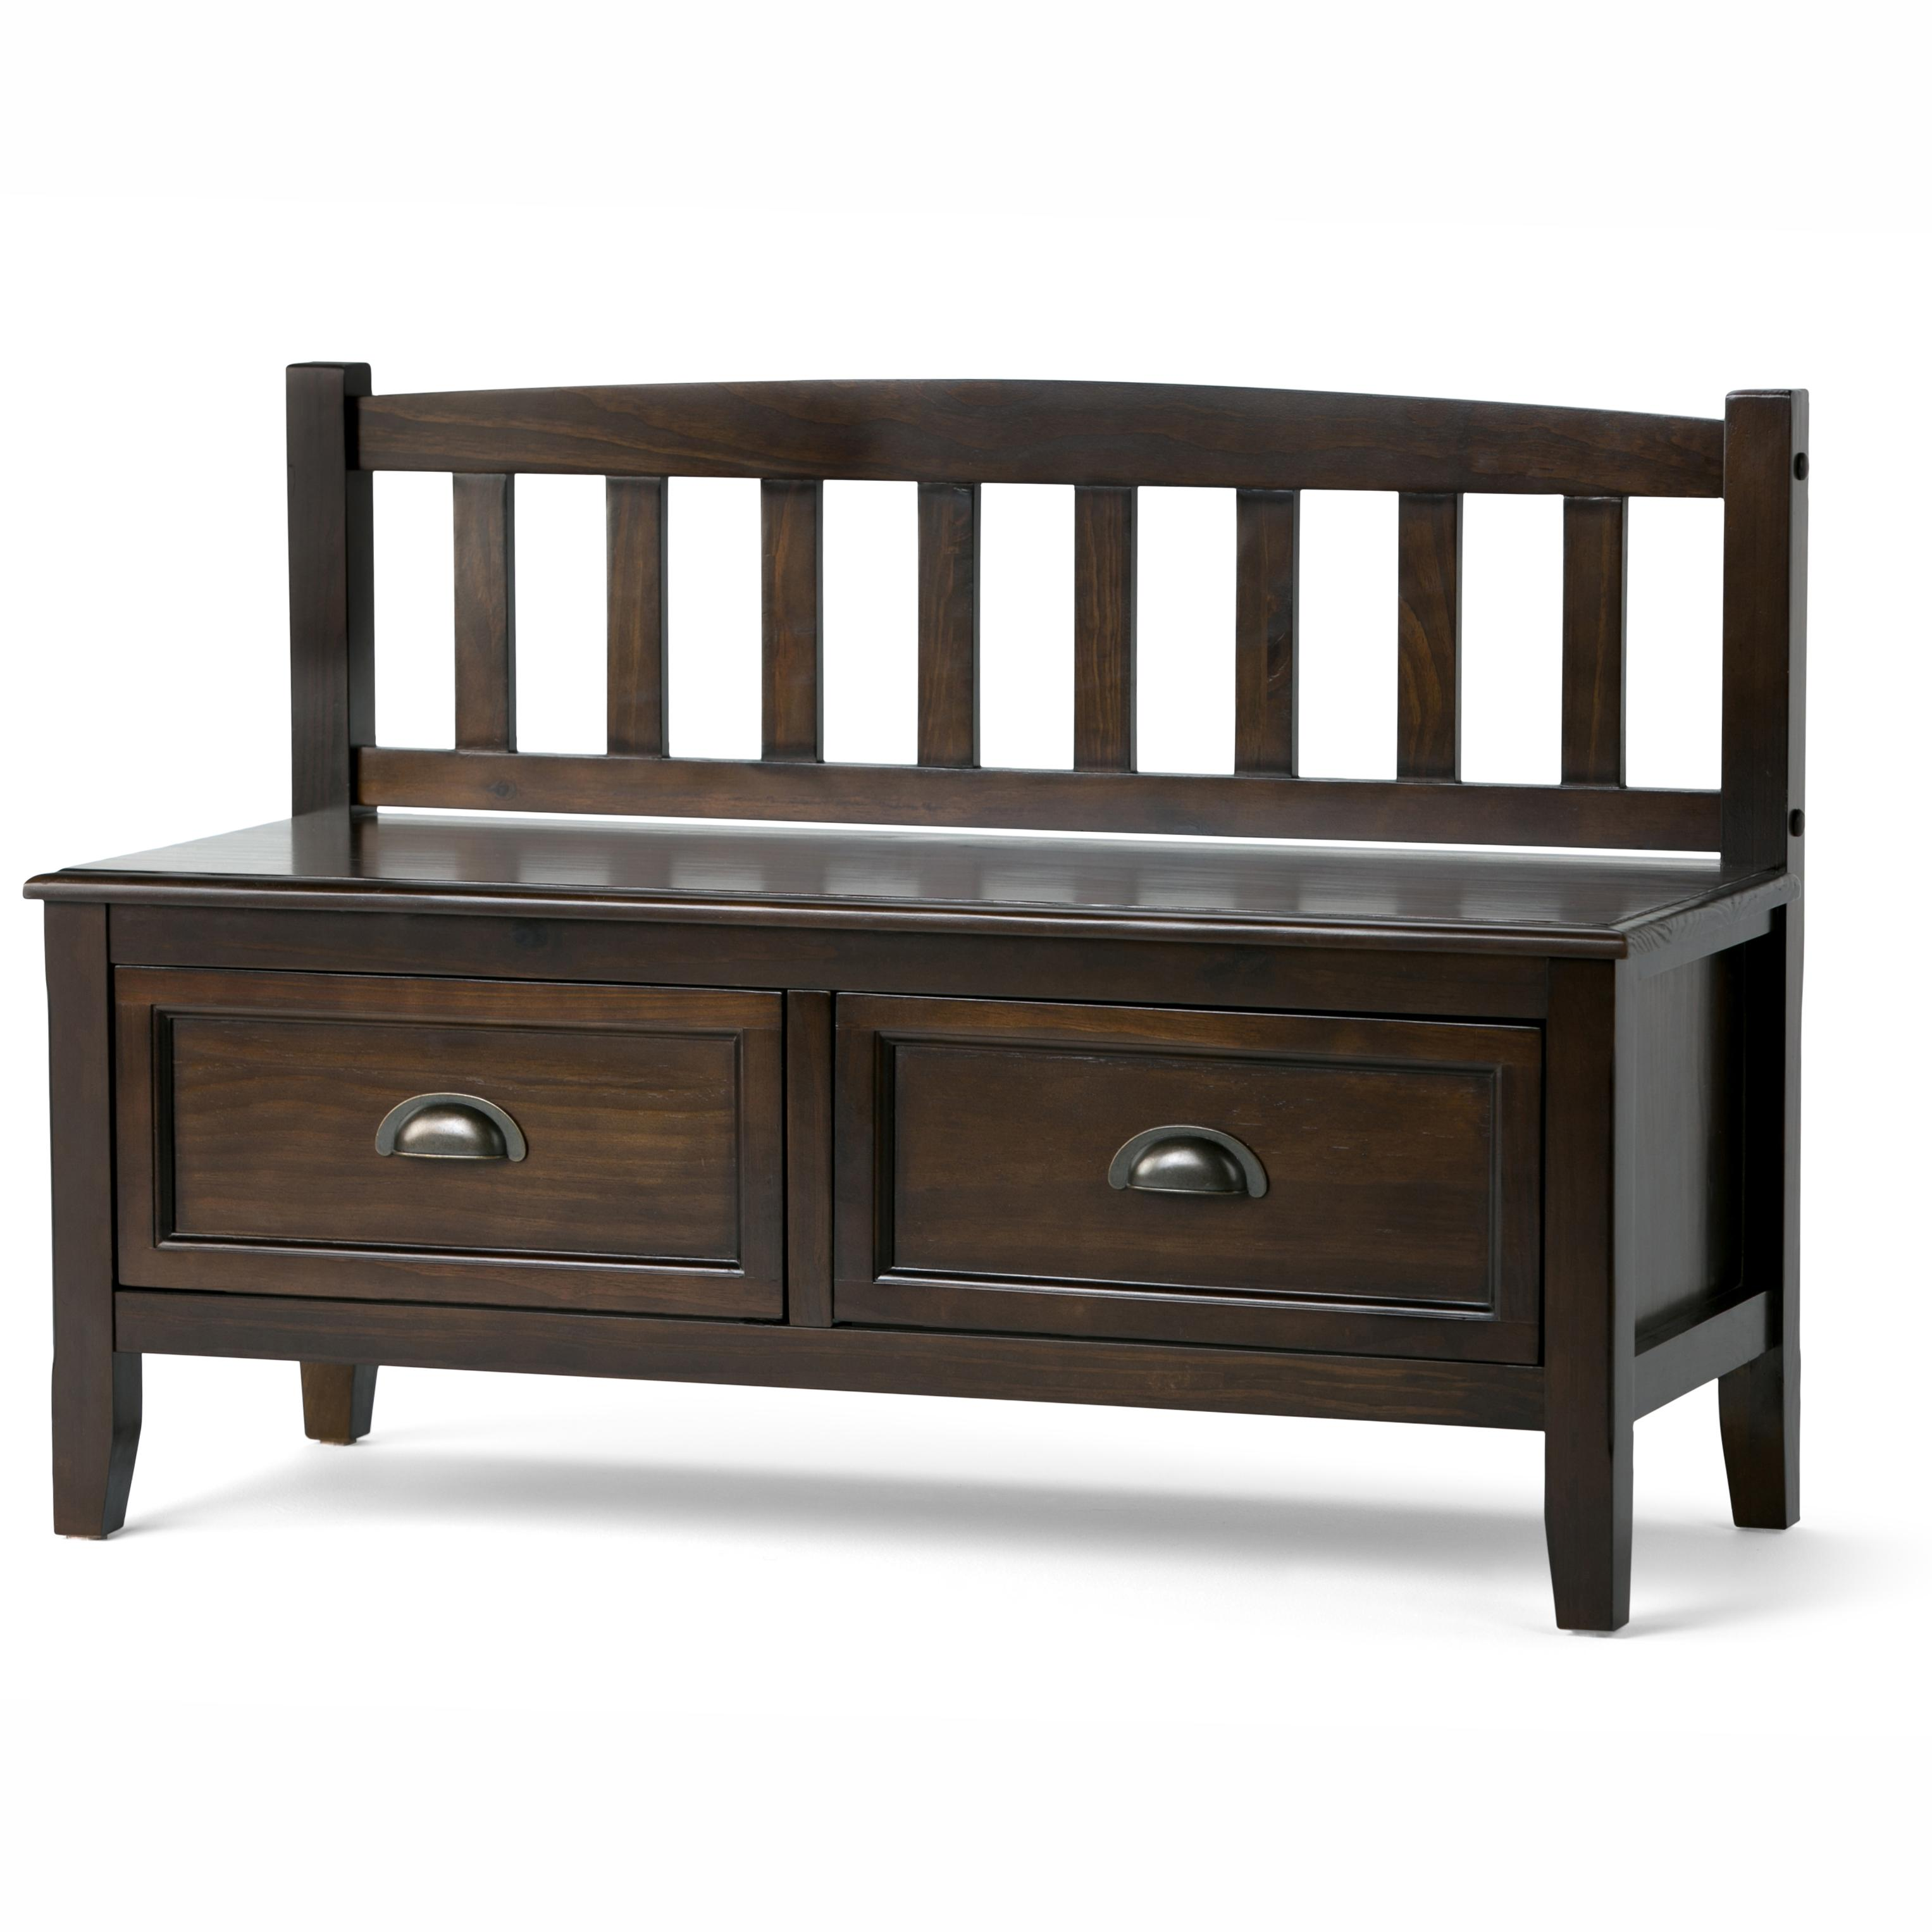 Simpli Home Burlington Entryway Storage Bench With Drawers Espresso Brown Kitchen